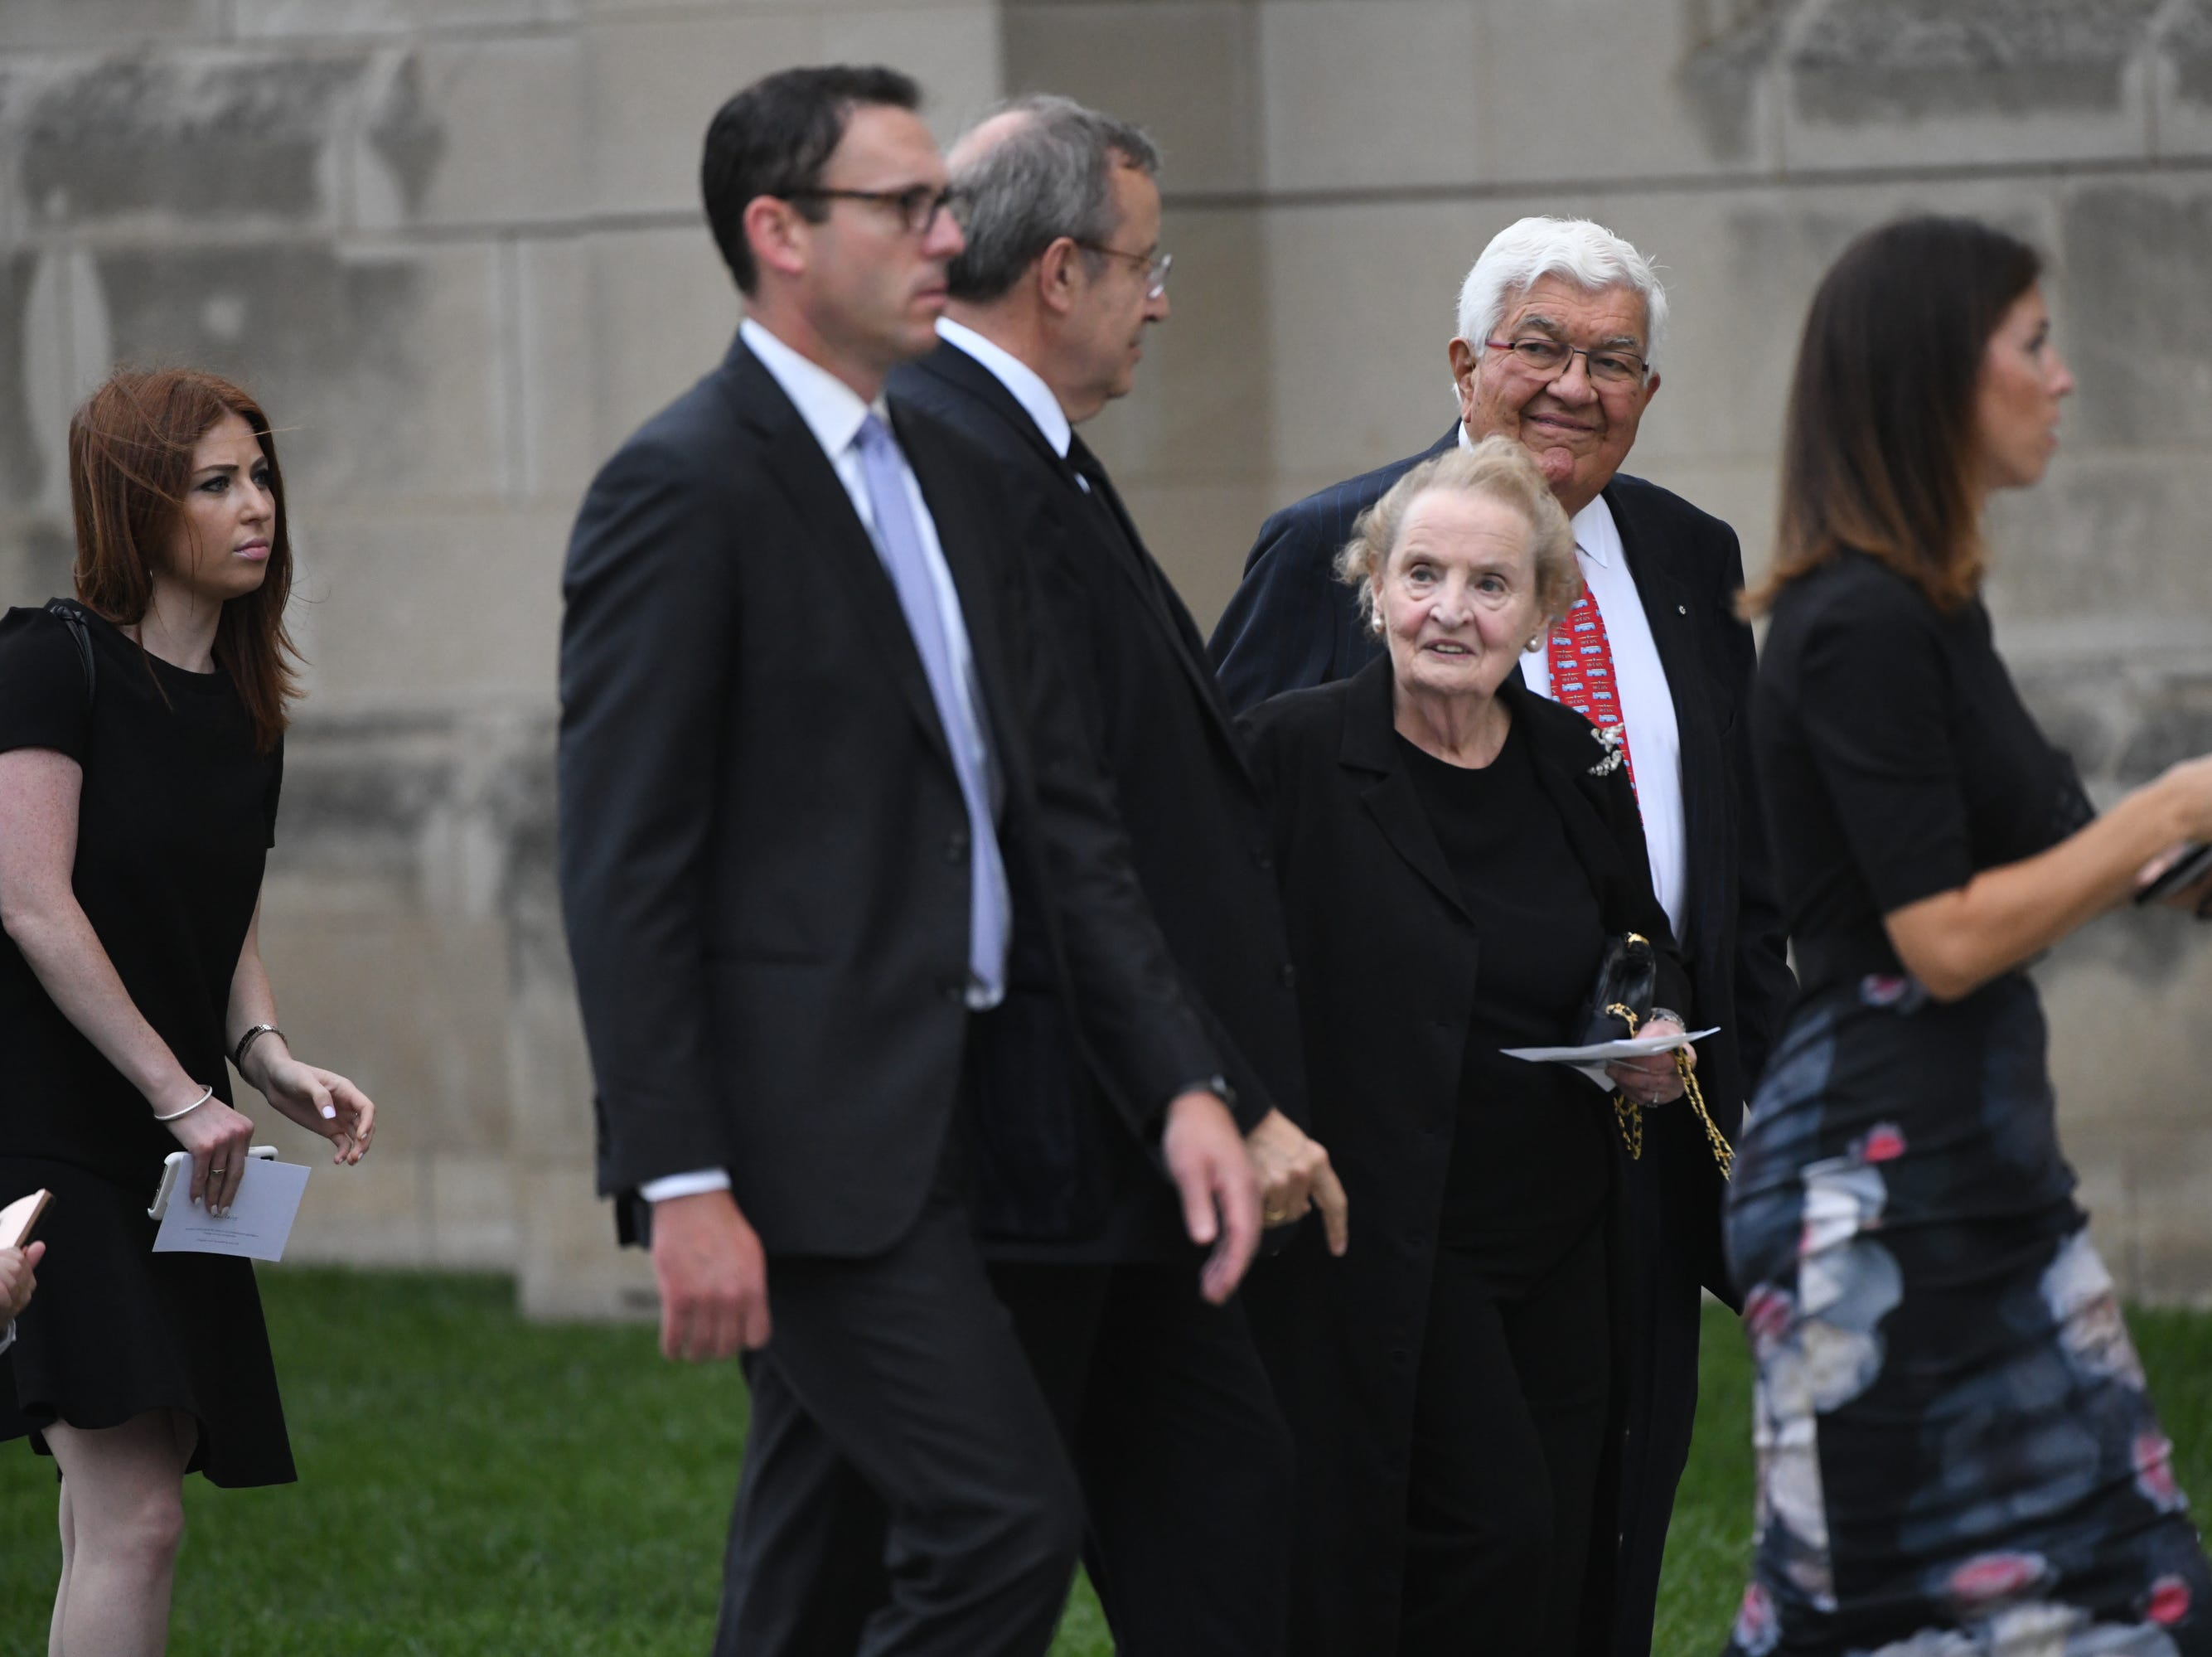 Former Secretary of State Madeleine Albright center approaches the National Cathedral, Saturday, in Washington, DC for a memorial service for John McCain.